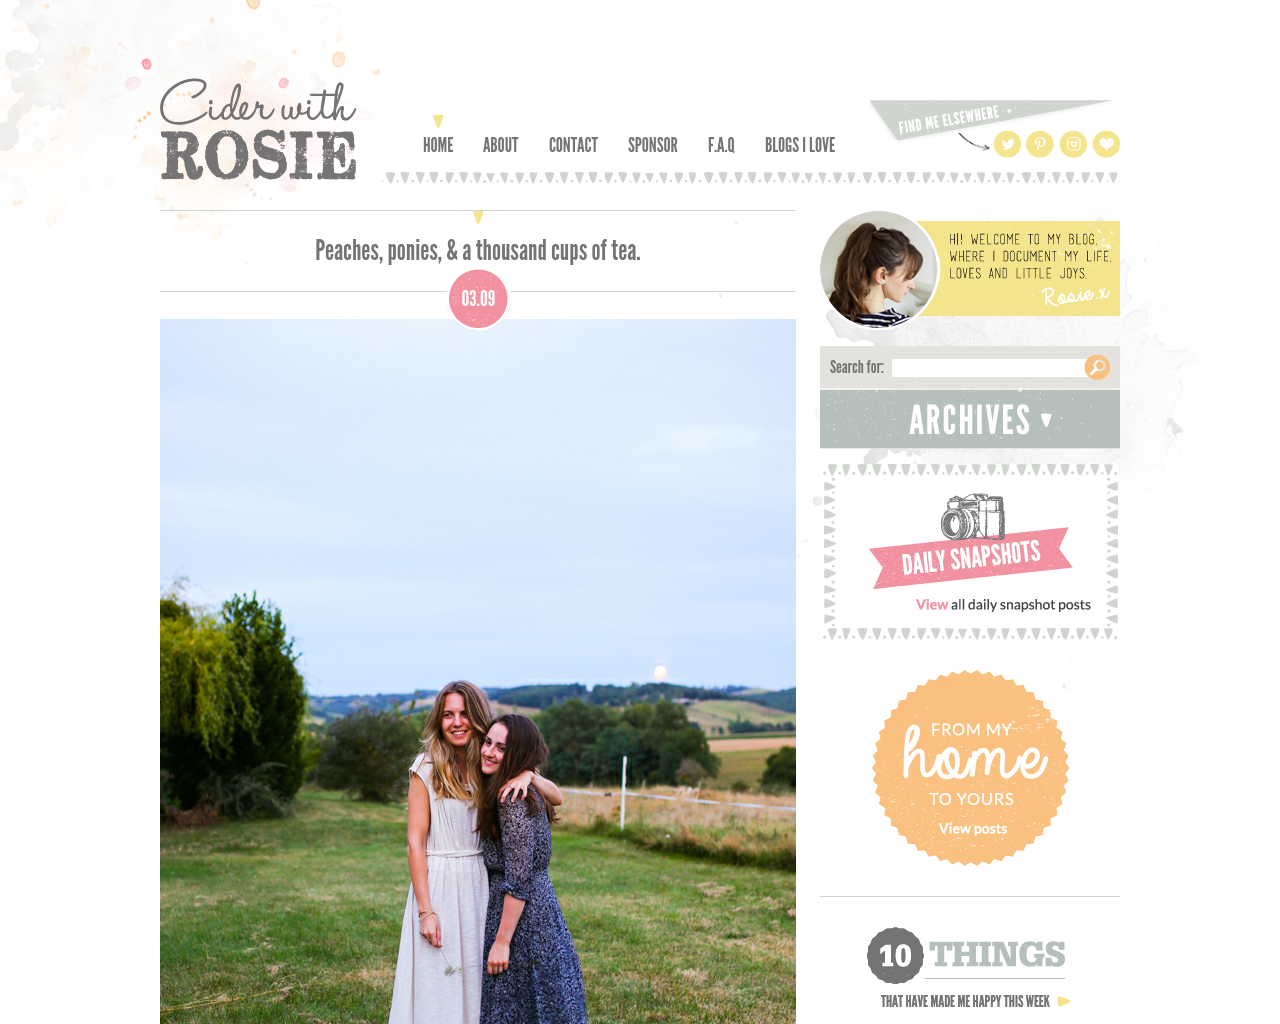 Cider-with-rosie-Advertising-Reviews-Pricing